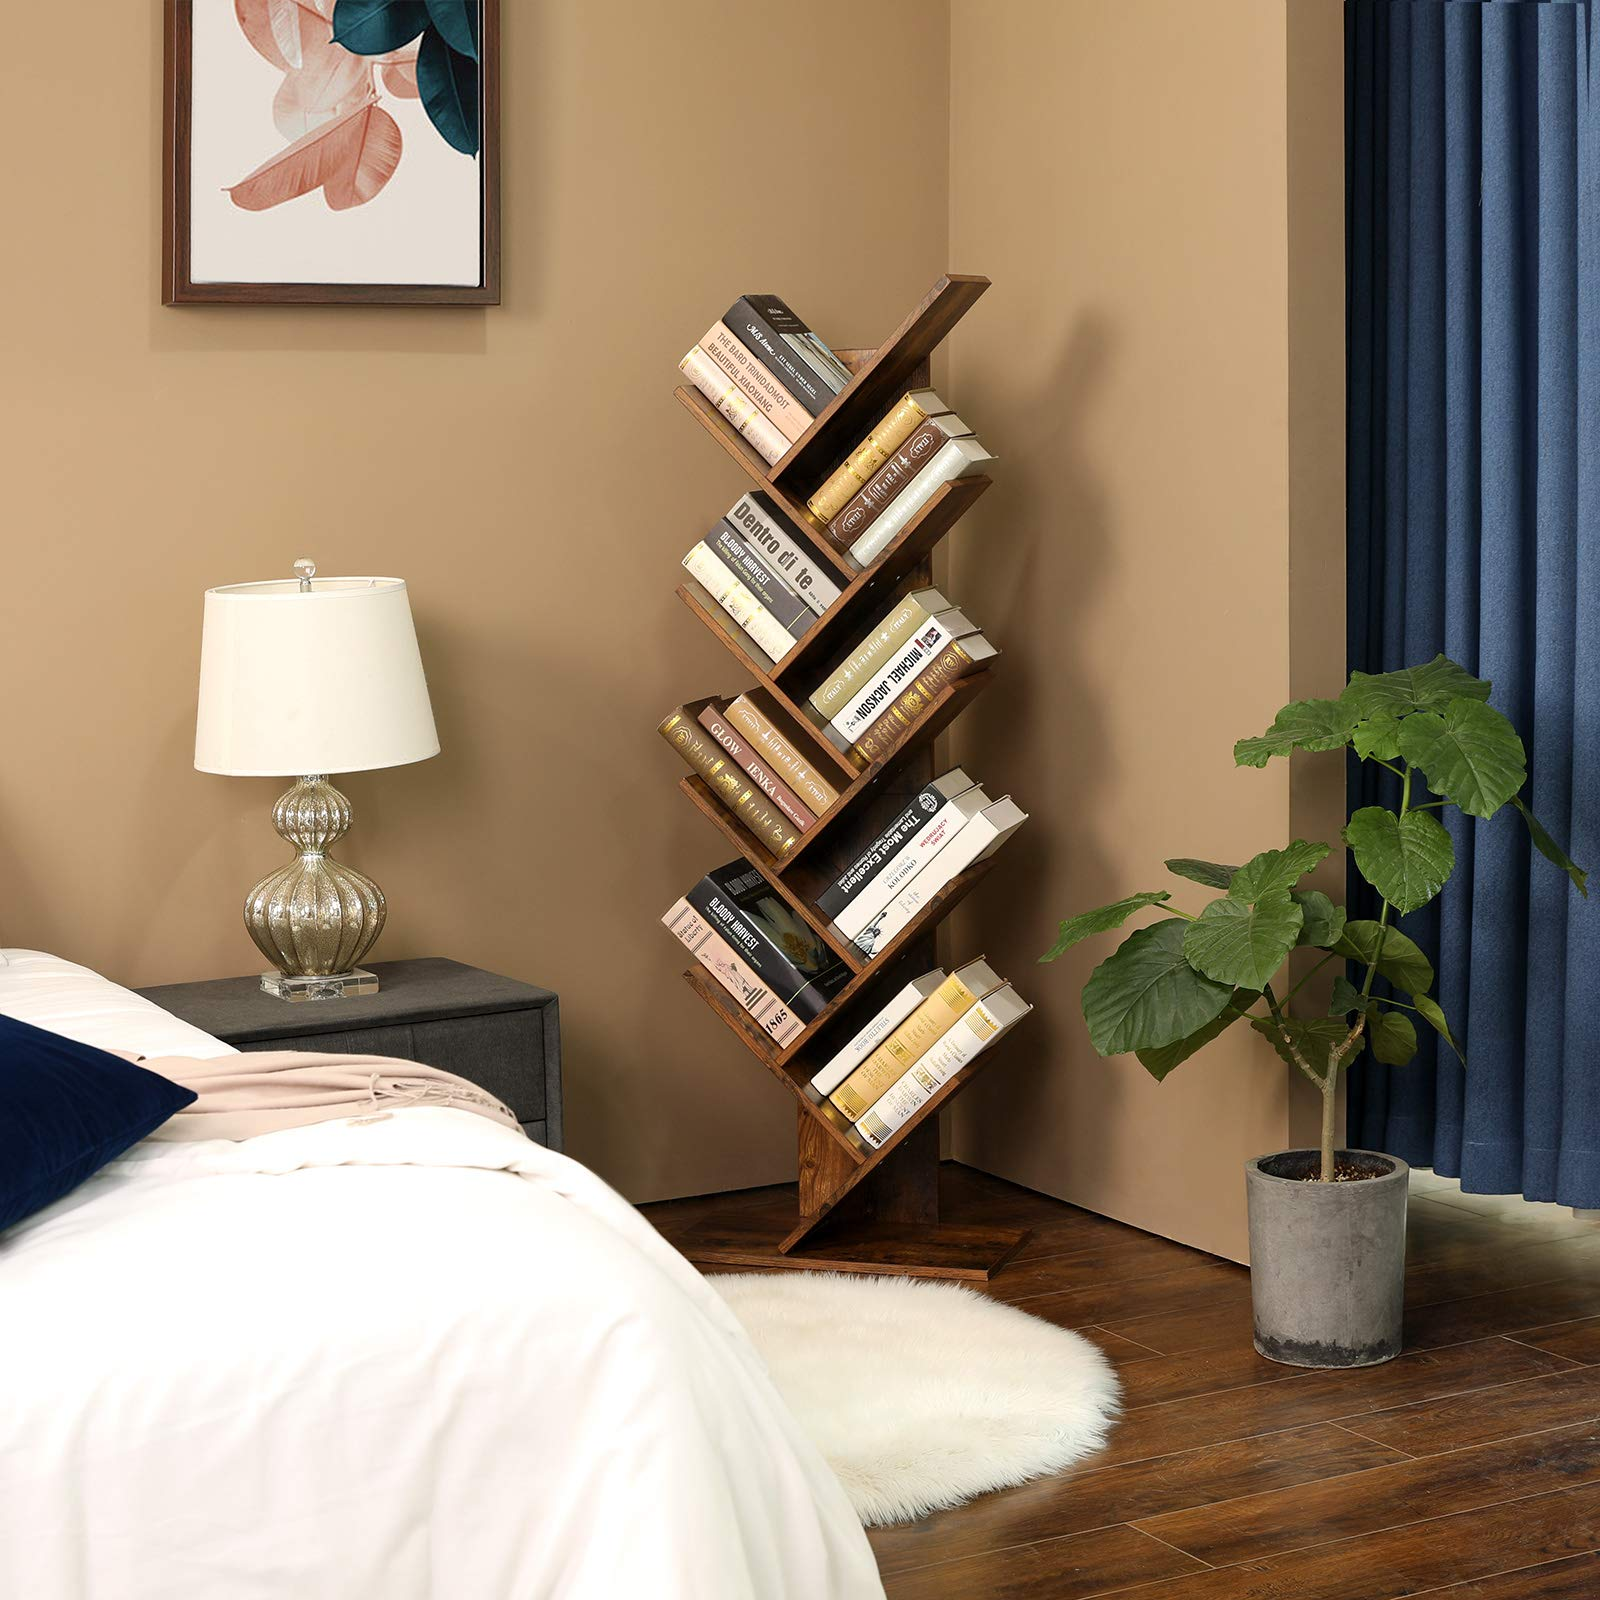 VASAGLE Tree Bookshelf, 8-Tier Floor Standing Bookcase, with Wooden Shelves for Living Room, Home Office, Rustic Brown ULBC11BX by VASAGLE (Image #3)